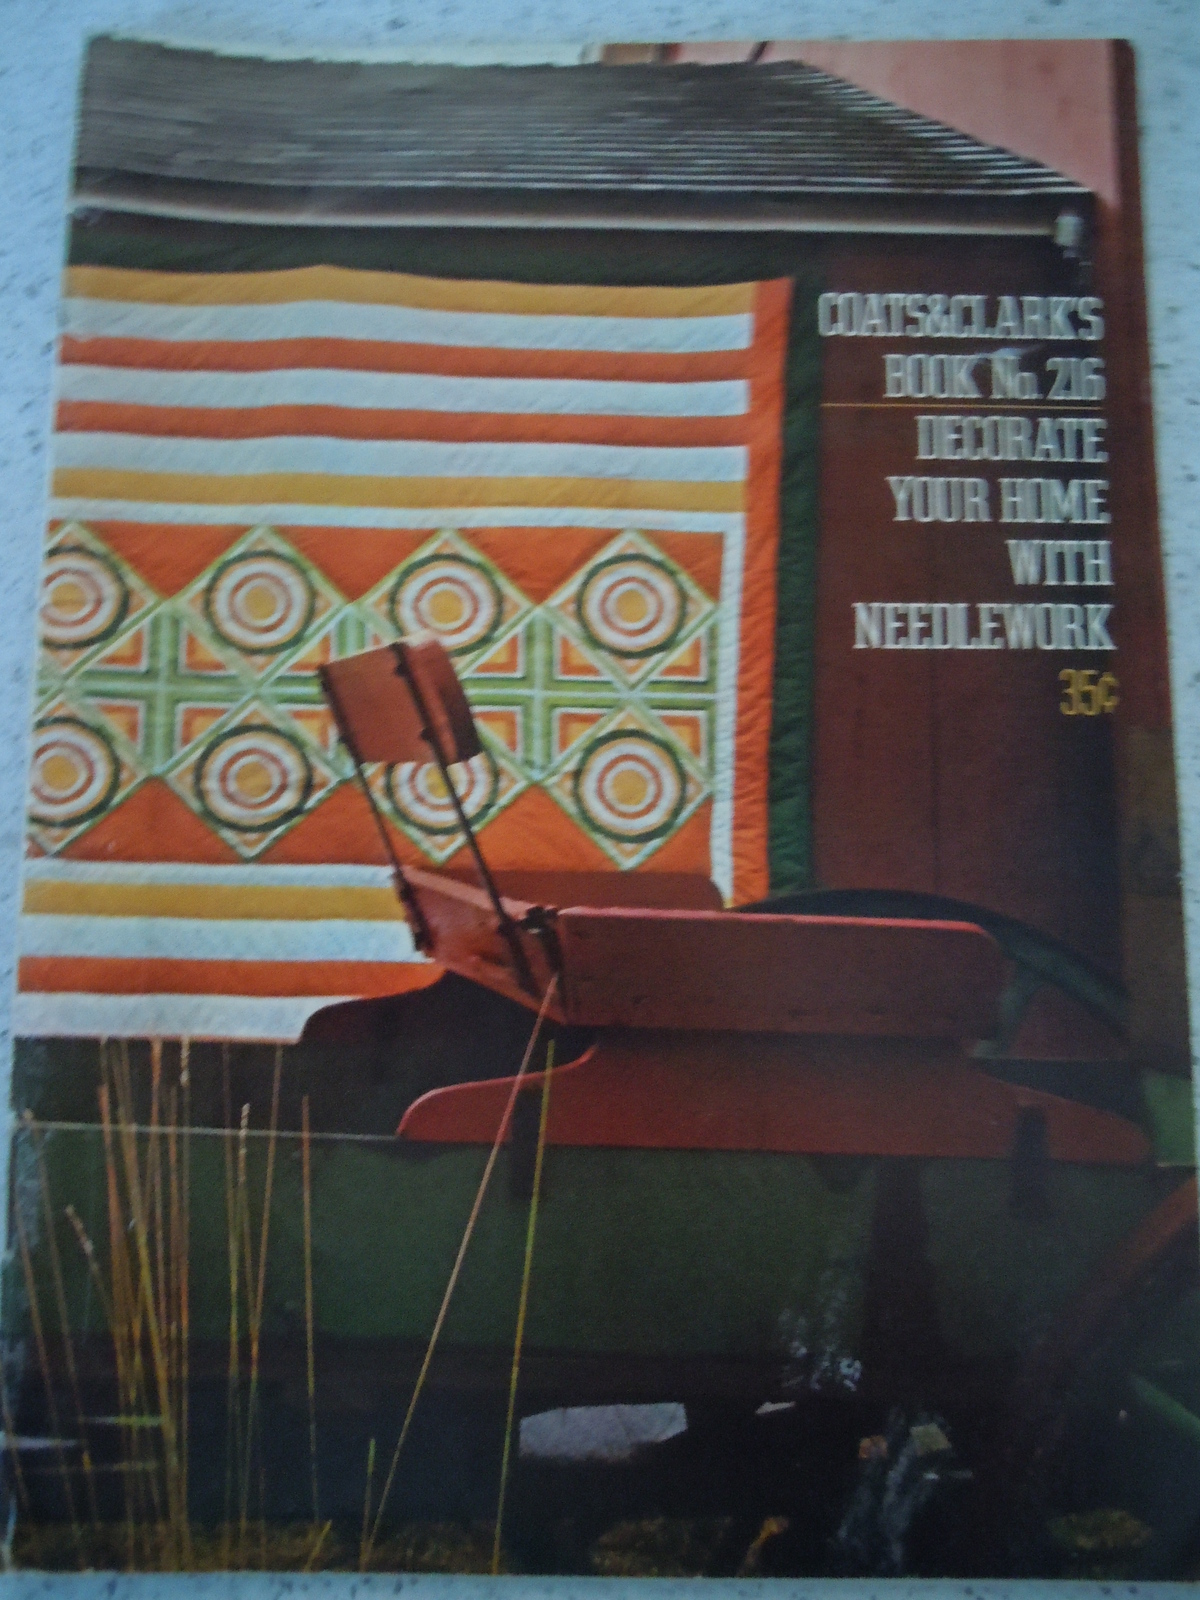 Coats & Clark Decorate Your Home with Needlework Booklet 1971 - $4.99